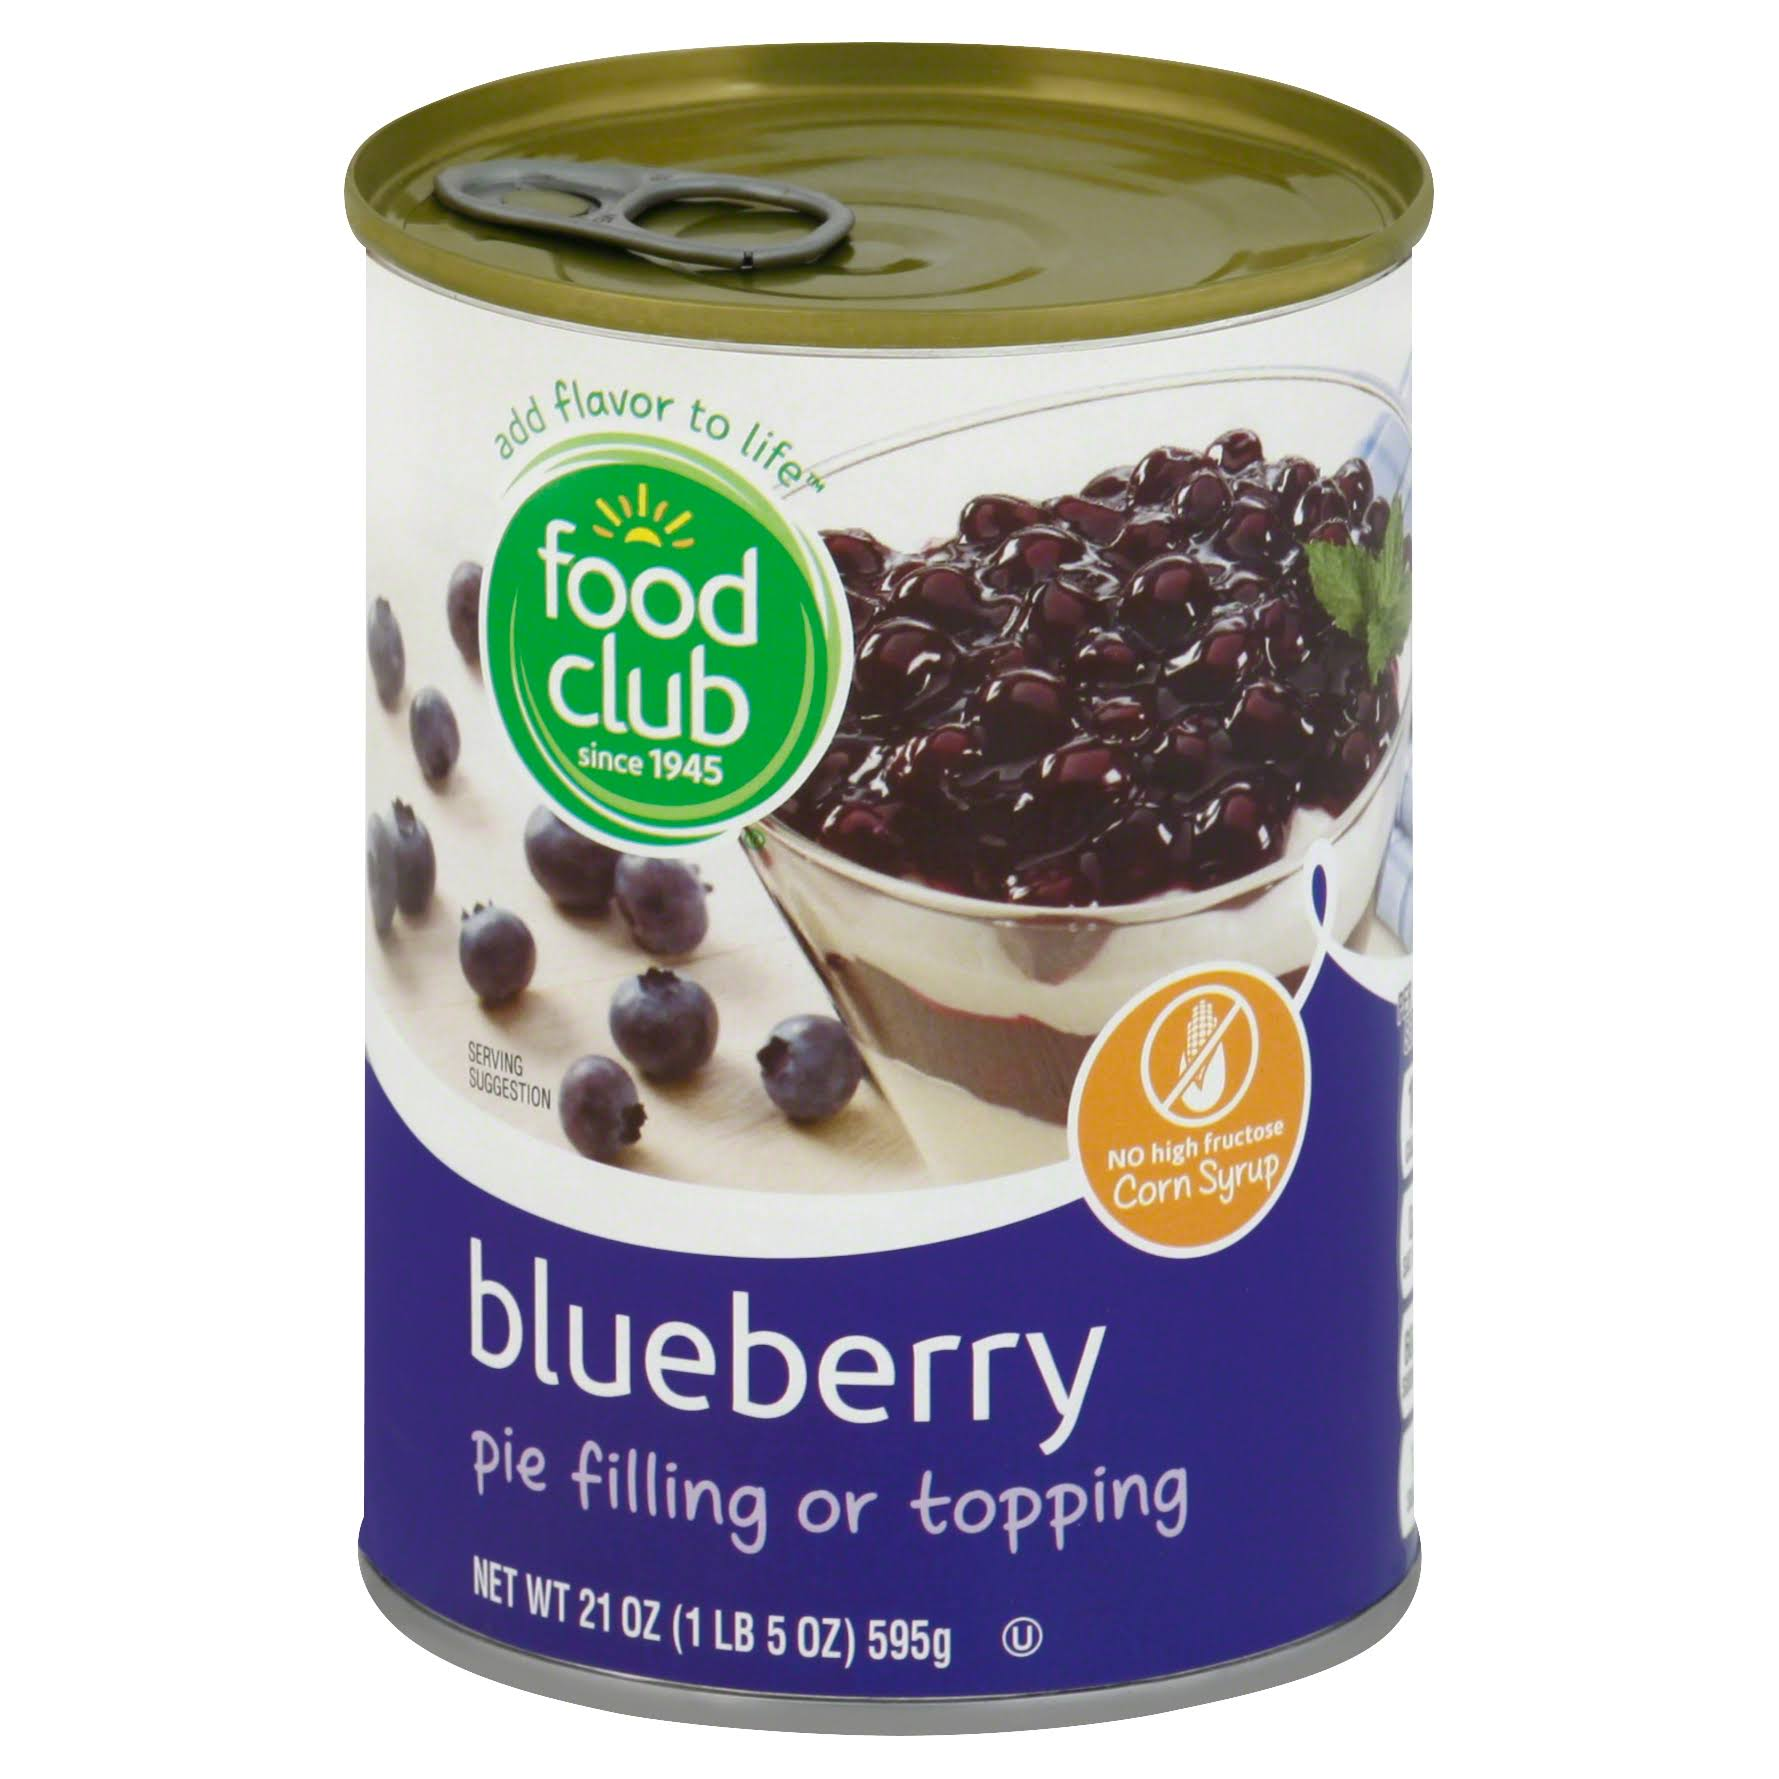 Food Club Pie Filling or Topping, Blueberry - 21 oz